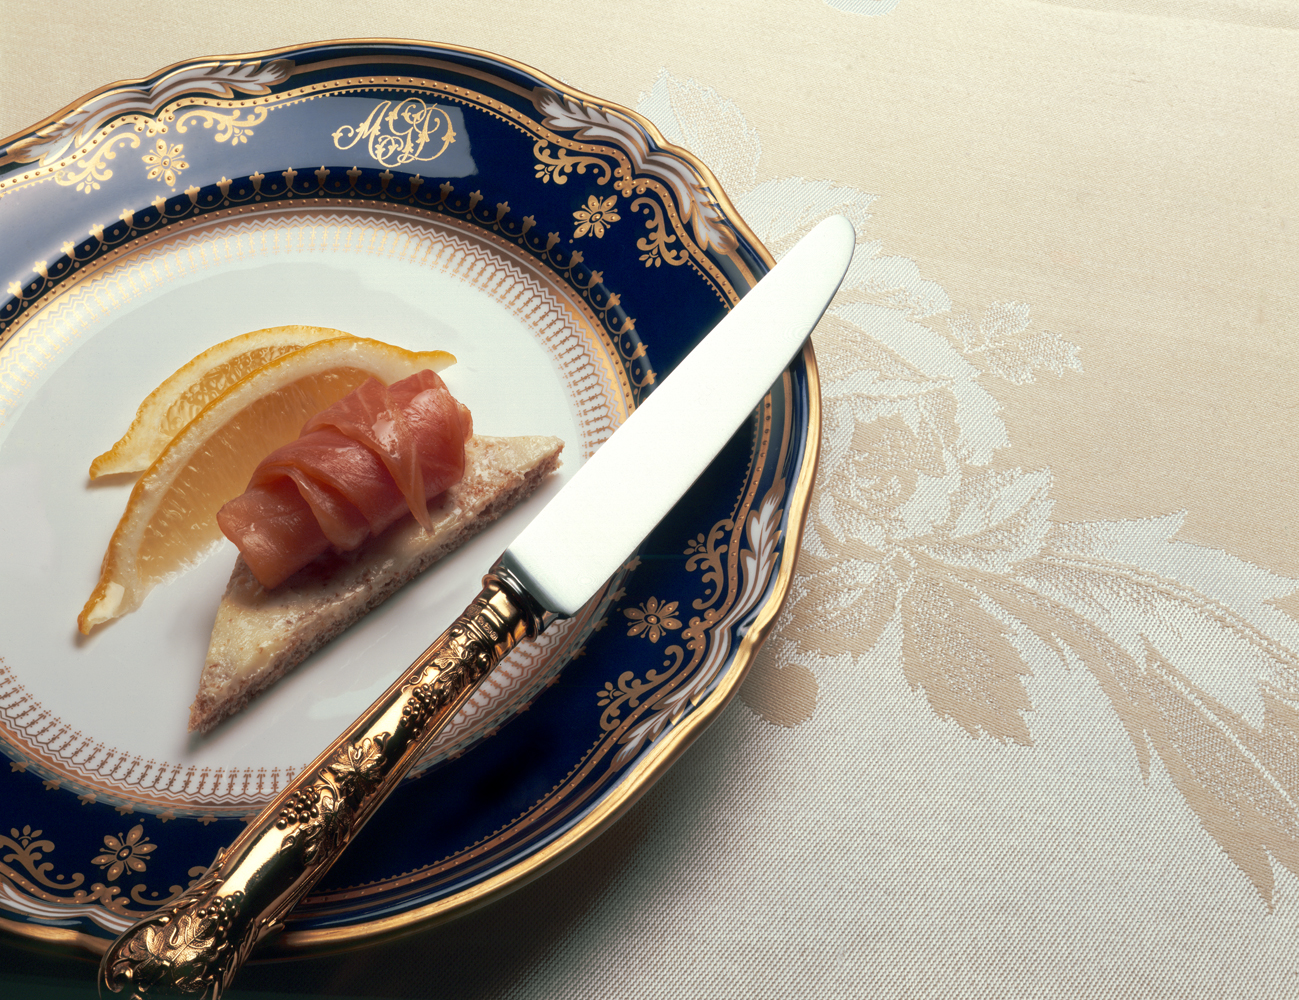 smoked salmon on brown bread (on gold rimmed plate).jpg